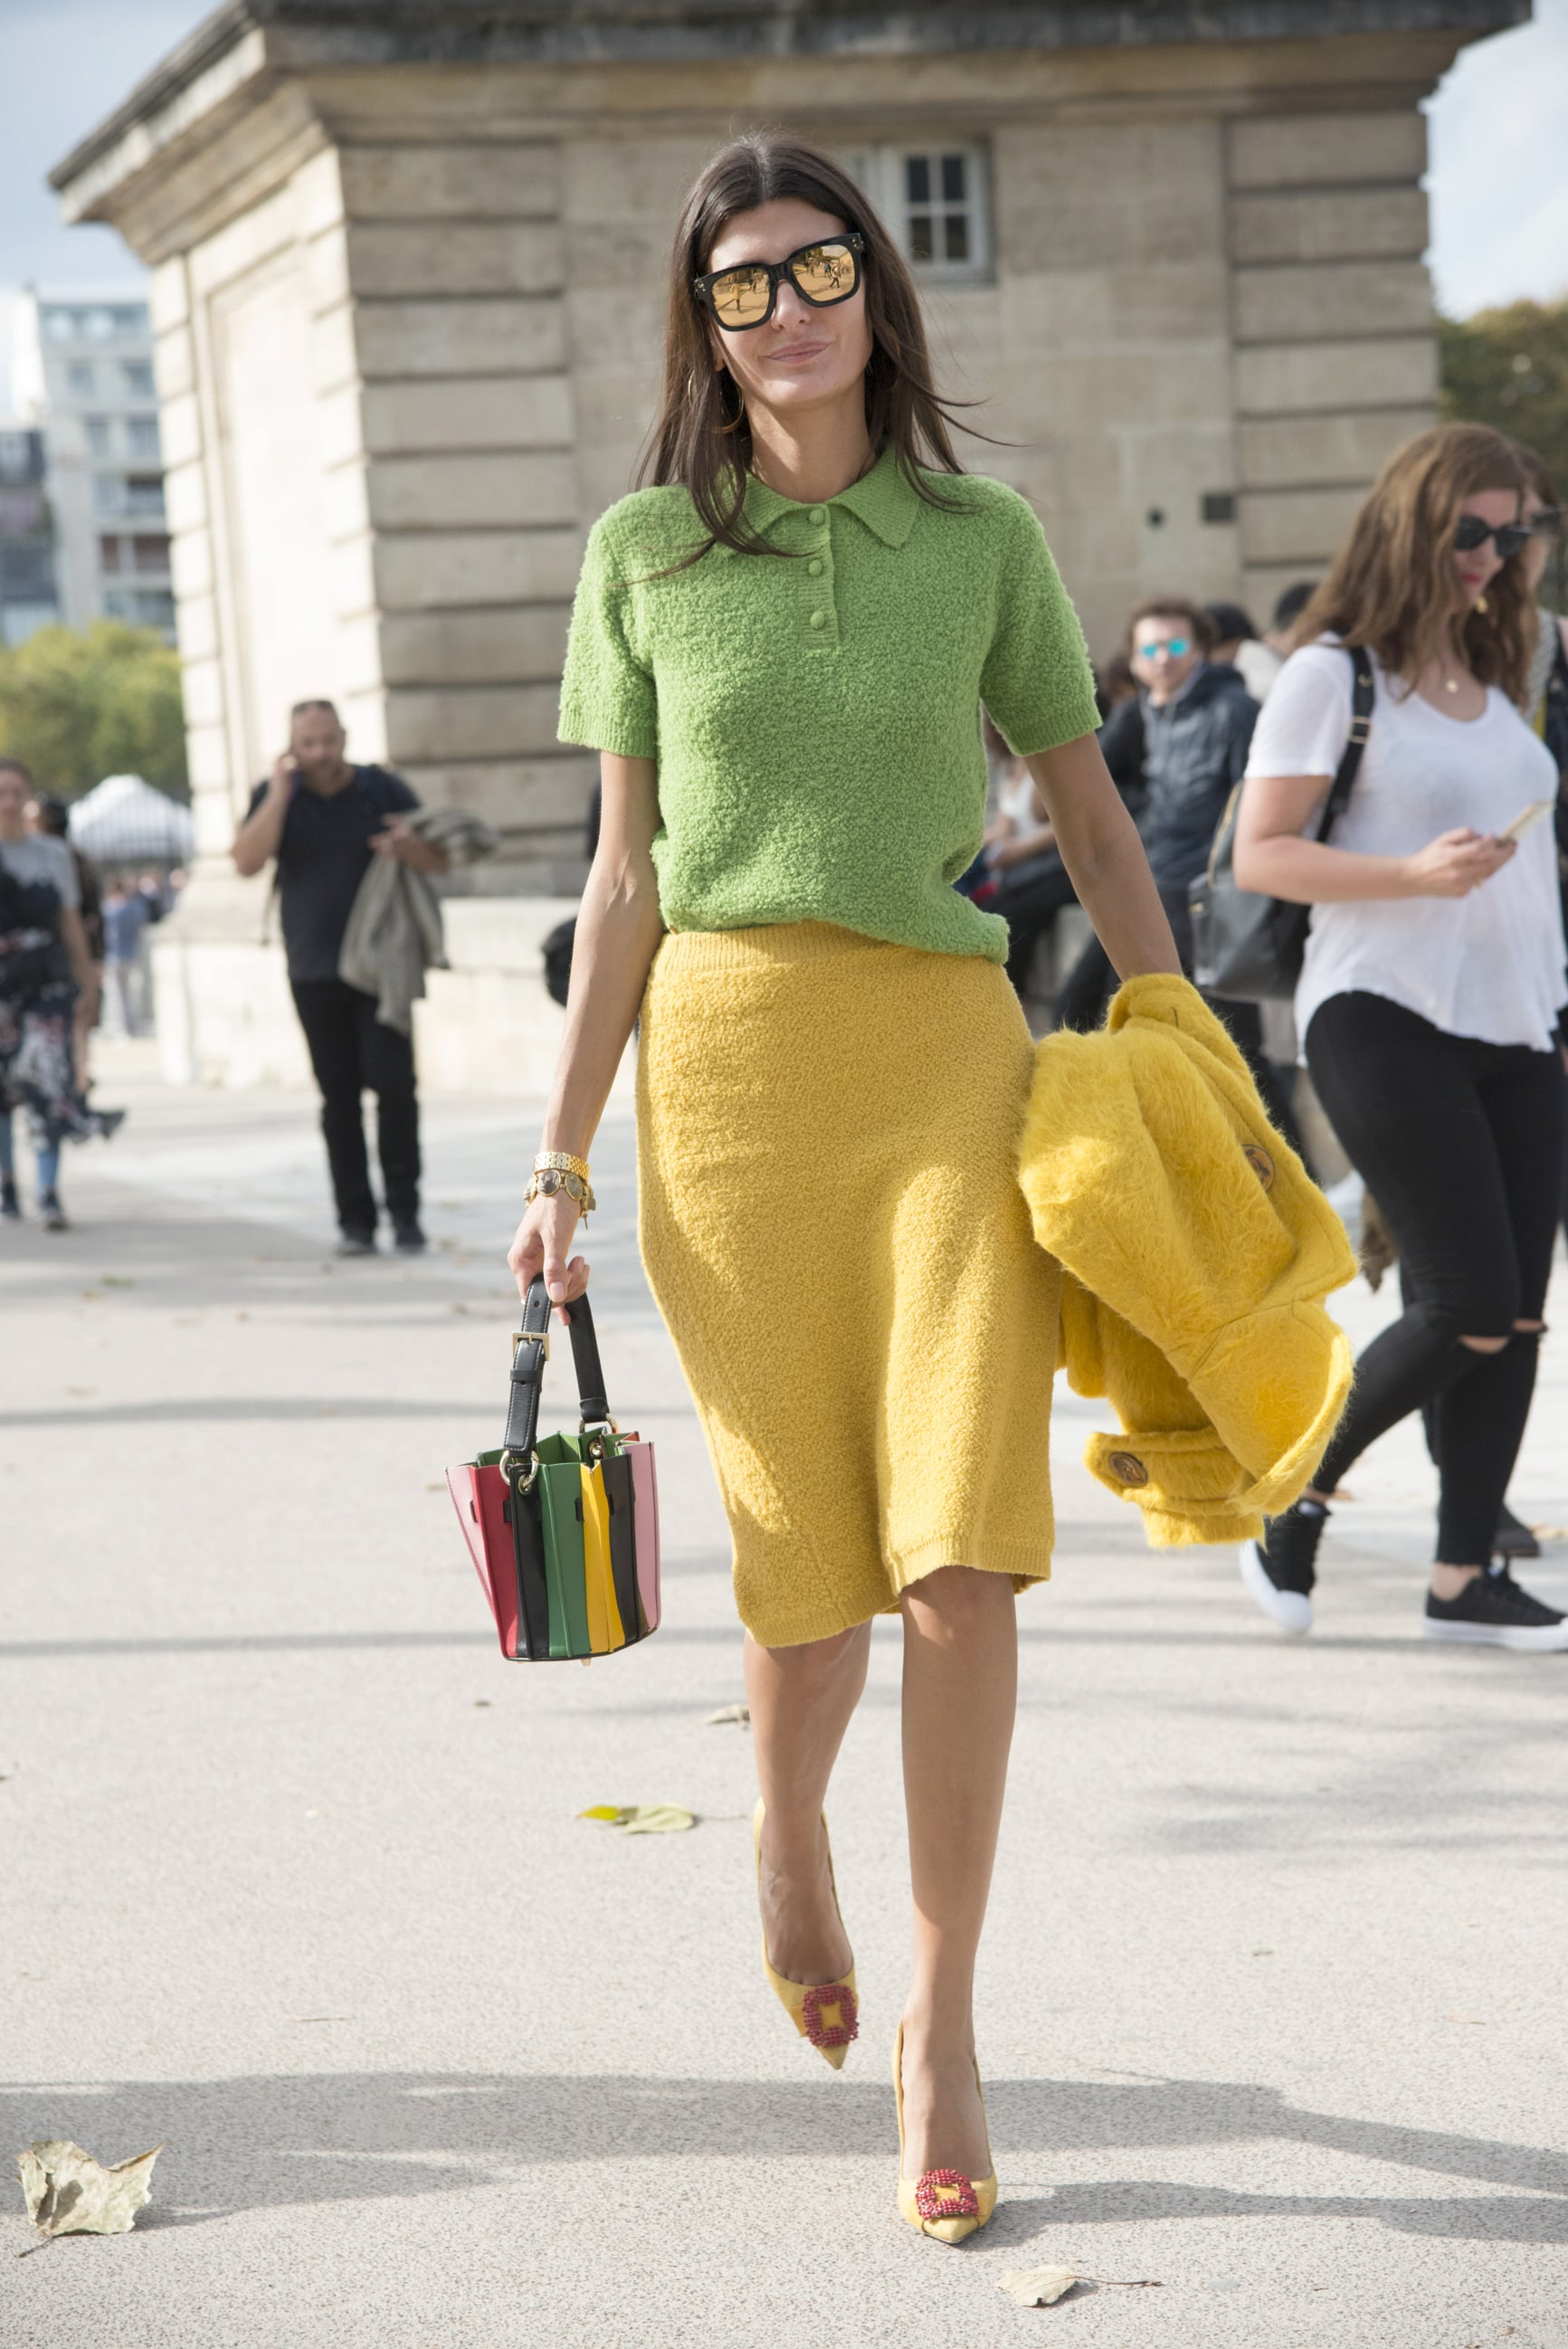 What to Wear to Work — 5 Chic Outfit Ideas For Every Office